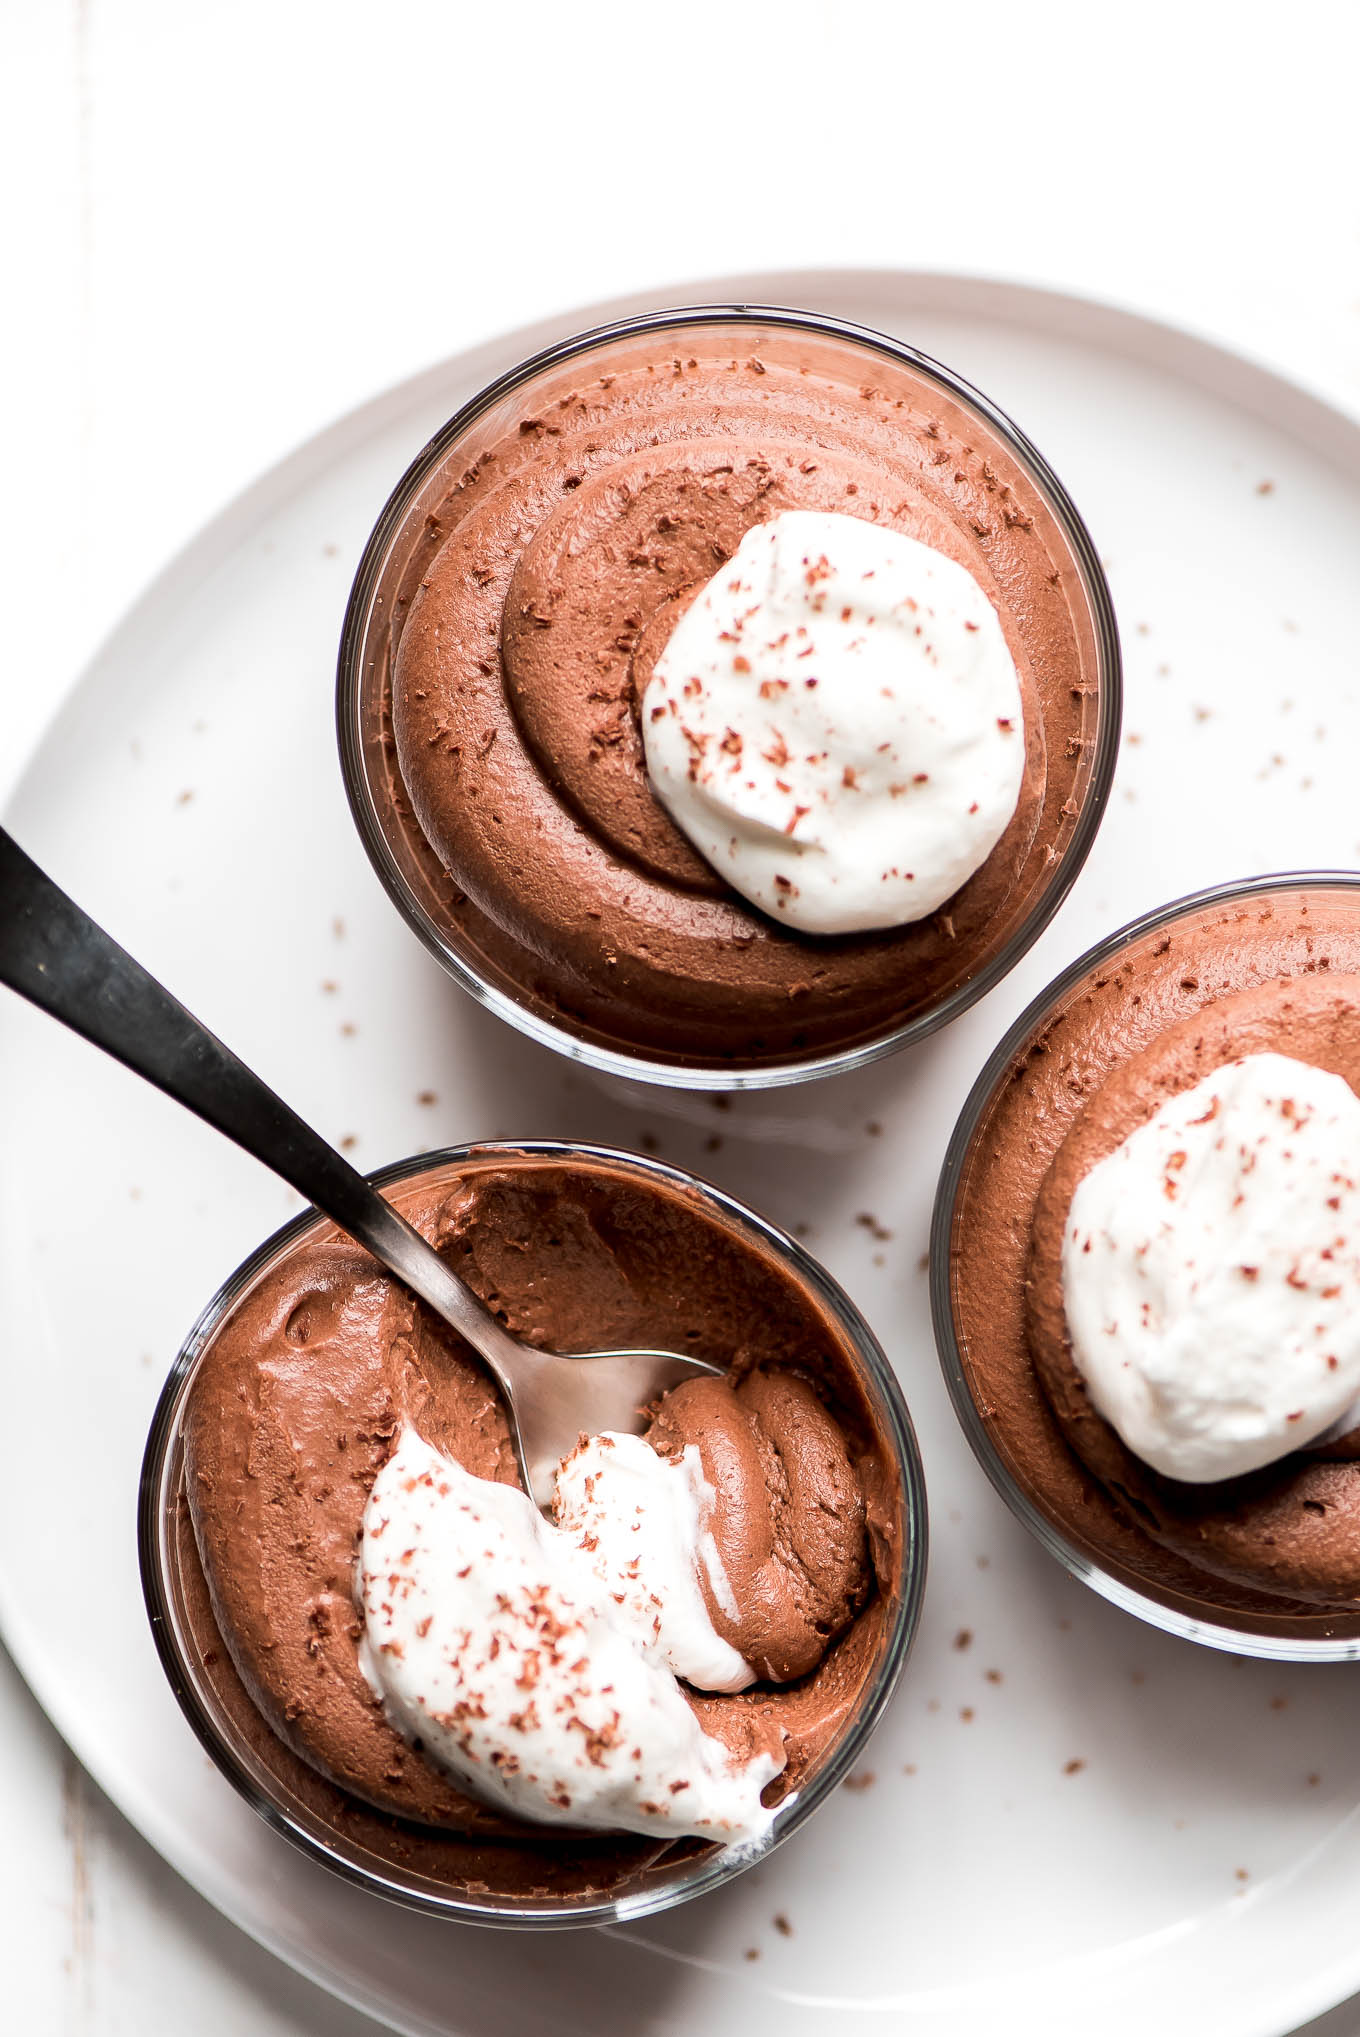 Easy Chocolate Mousse Garnish Glaze